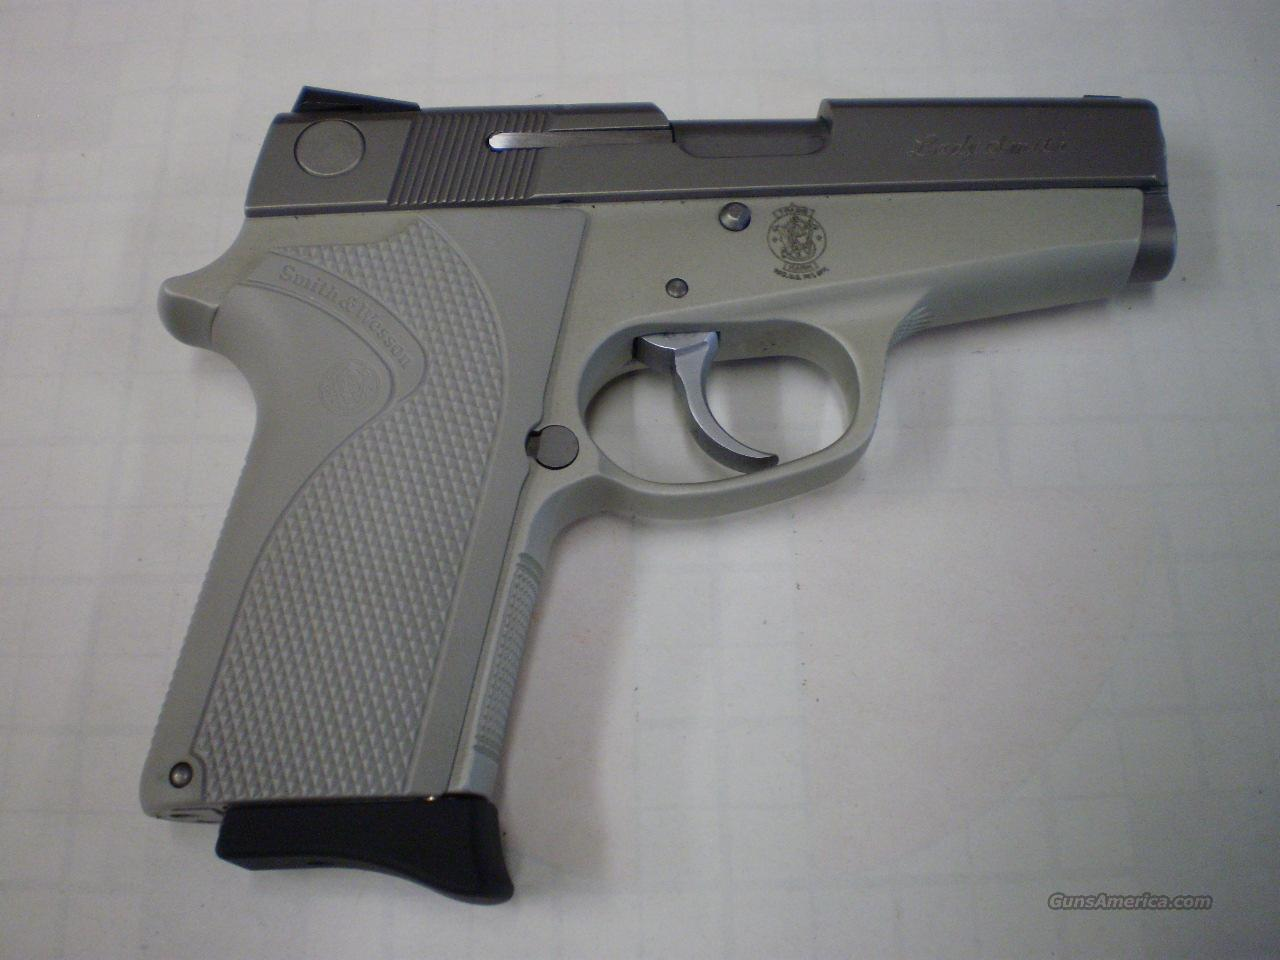 SMITH & WESSON 3913 LADY SMITH  9MM  Guns > Pistols > Smith & Wesson Pistols - Autos > Alloy Frame